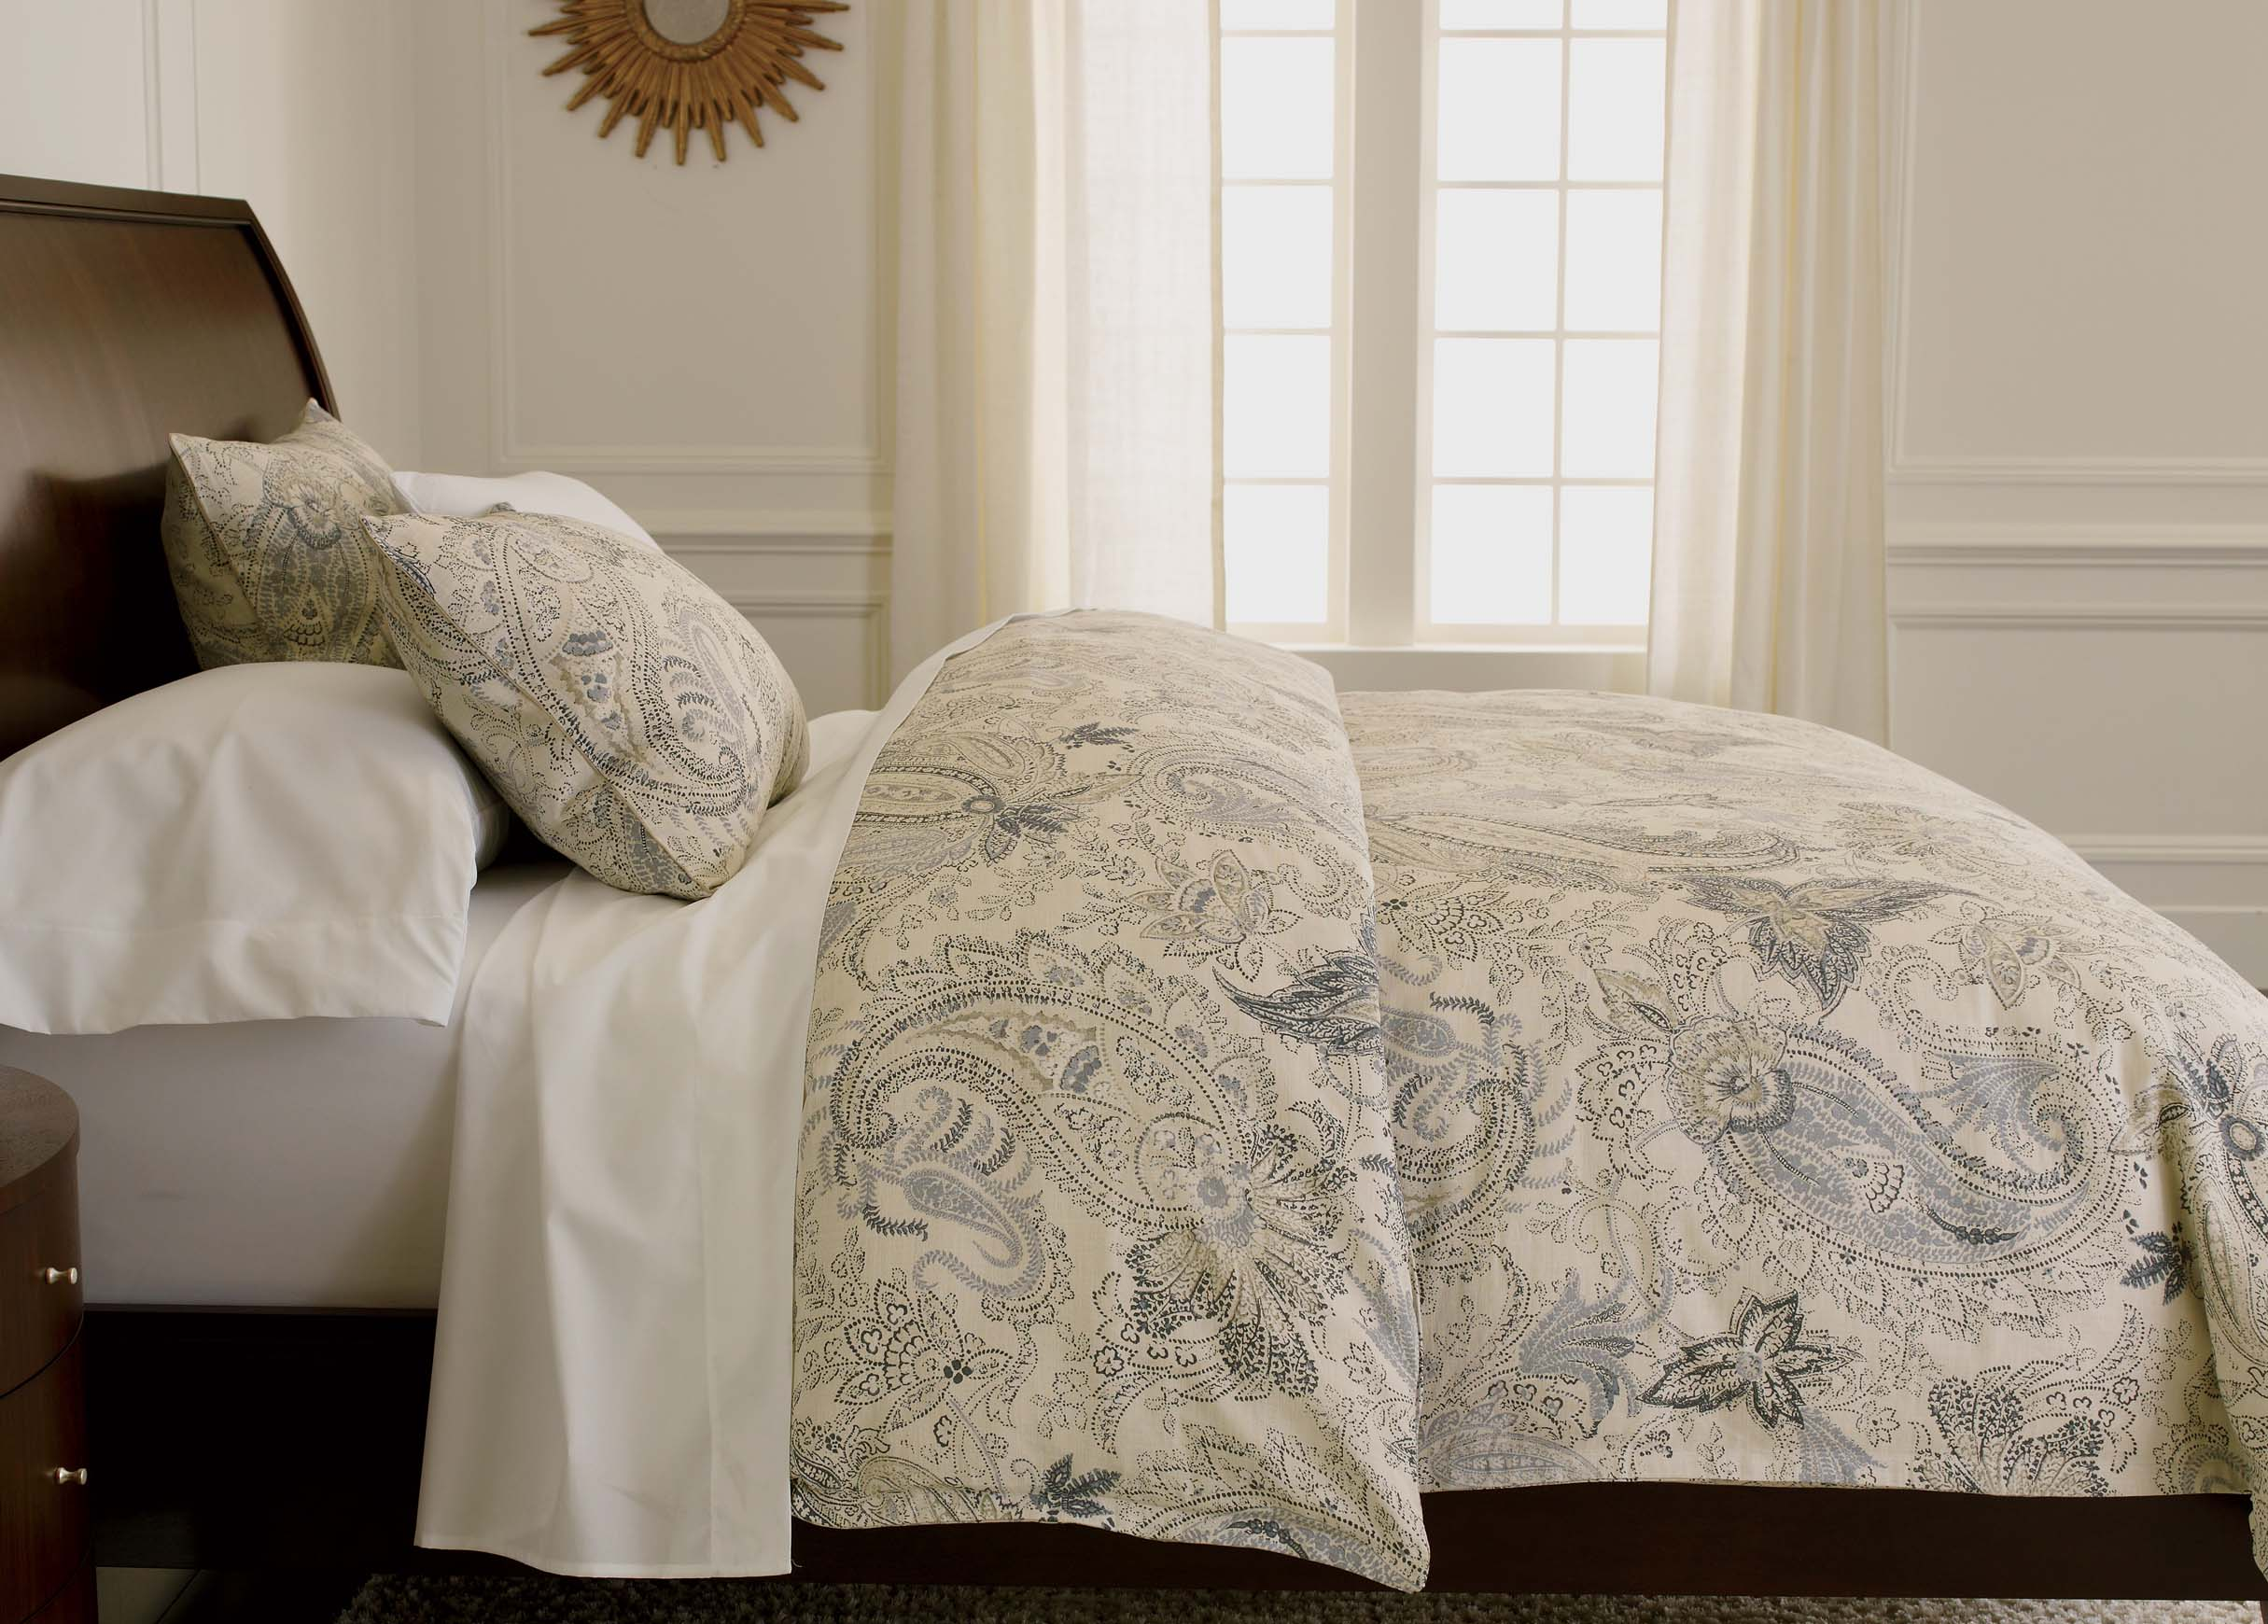 duvet tag harper king paisley with cover articles covers elegant of red sweetgalas